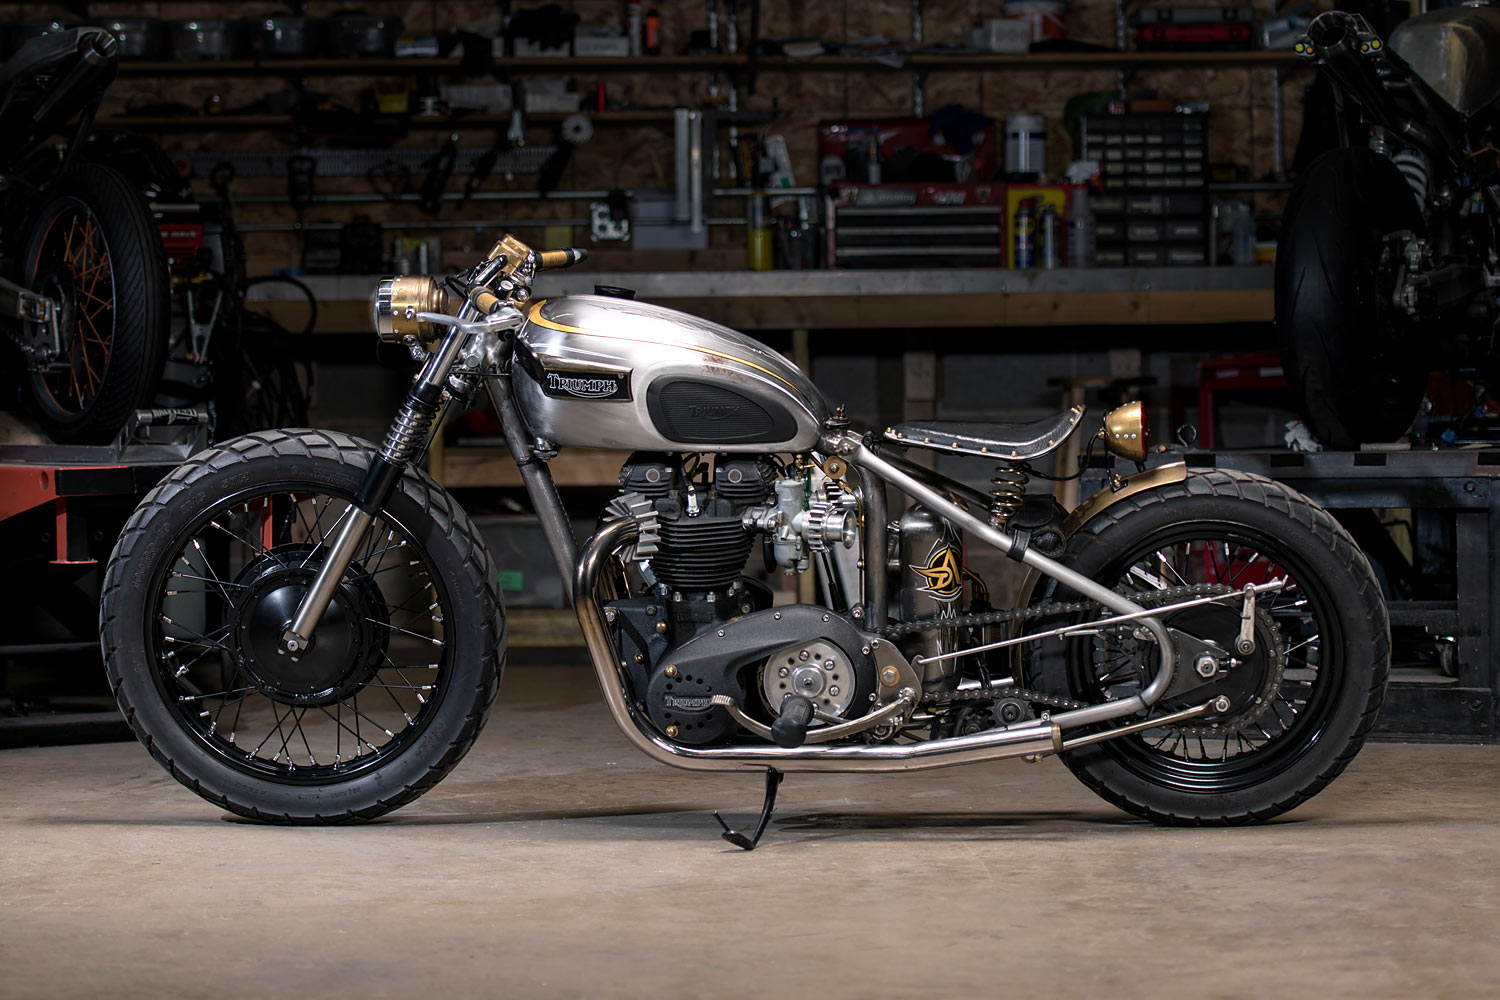 You Only Live Twice Analog Motorcycles Rebuild Their Classic 72